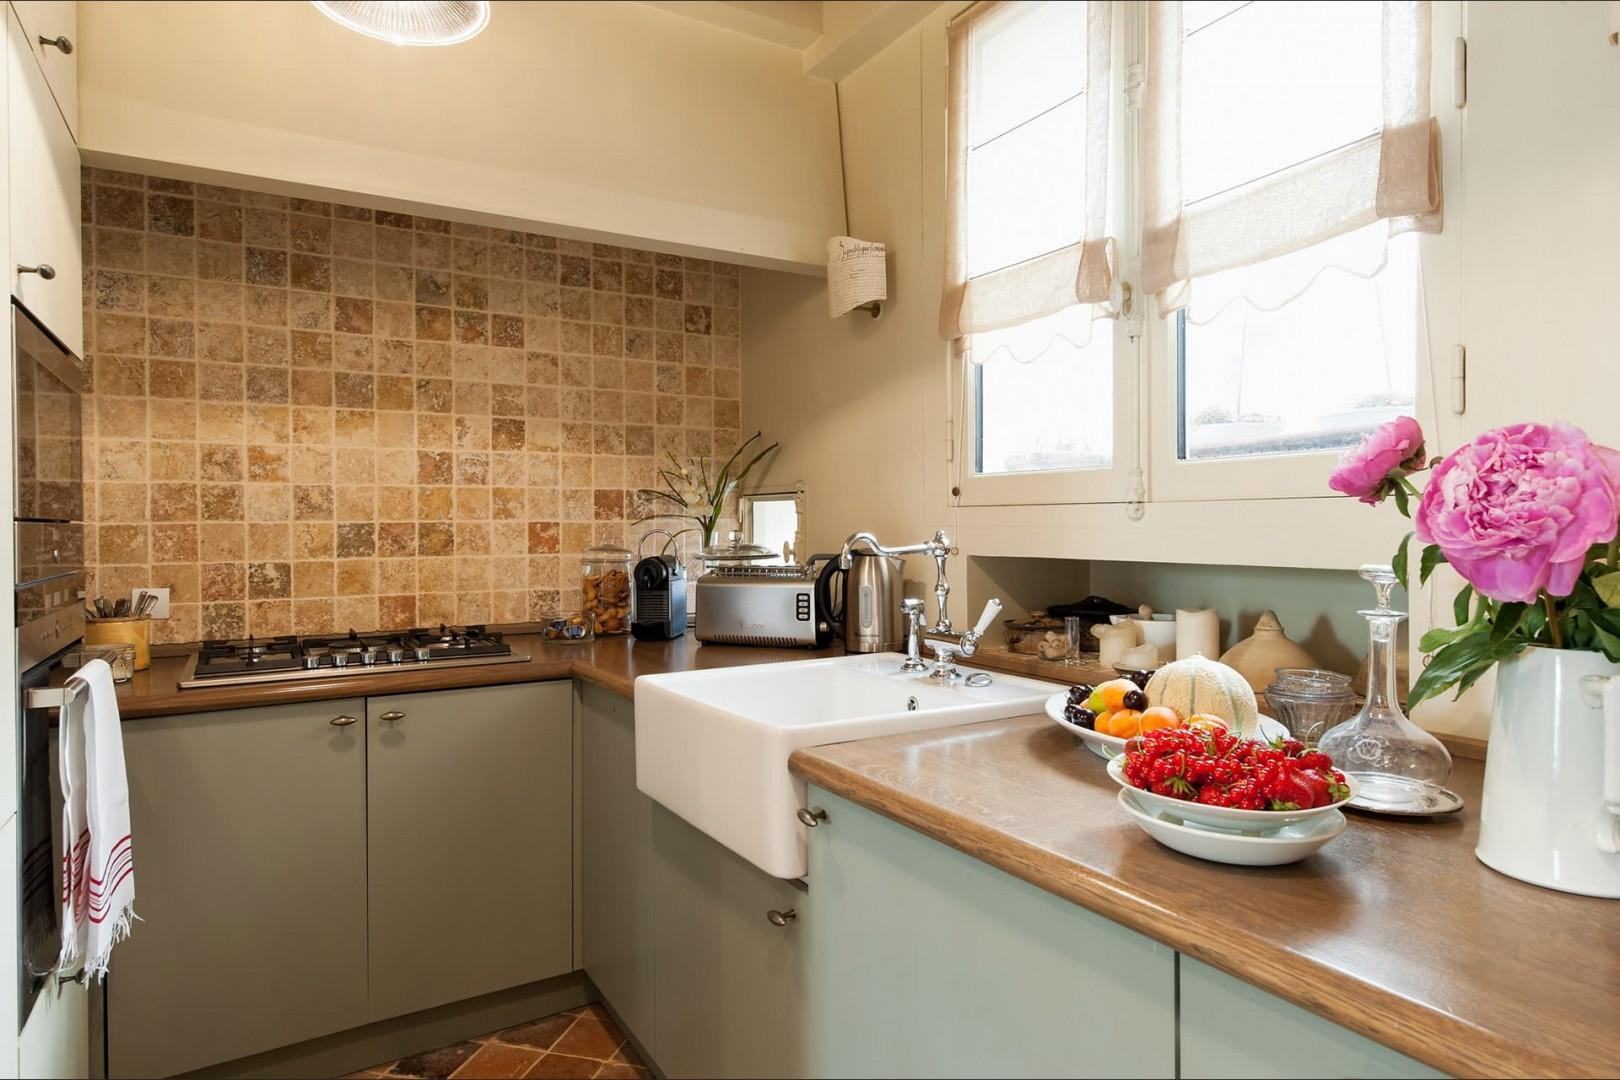 Enjoy preparing meals in this lovely kitchen with modern appliances.